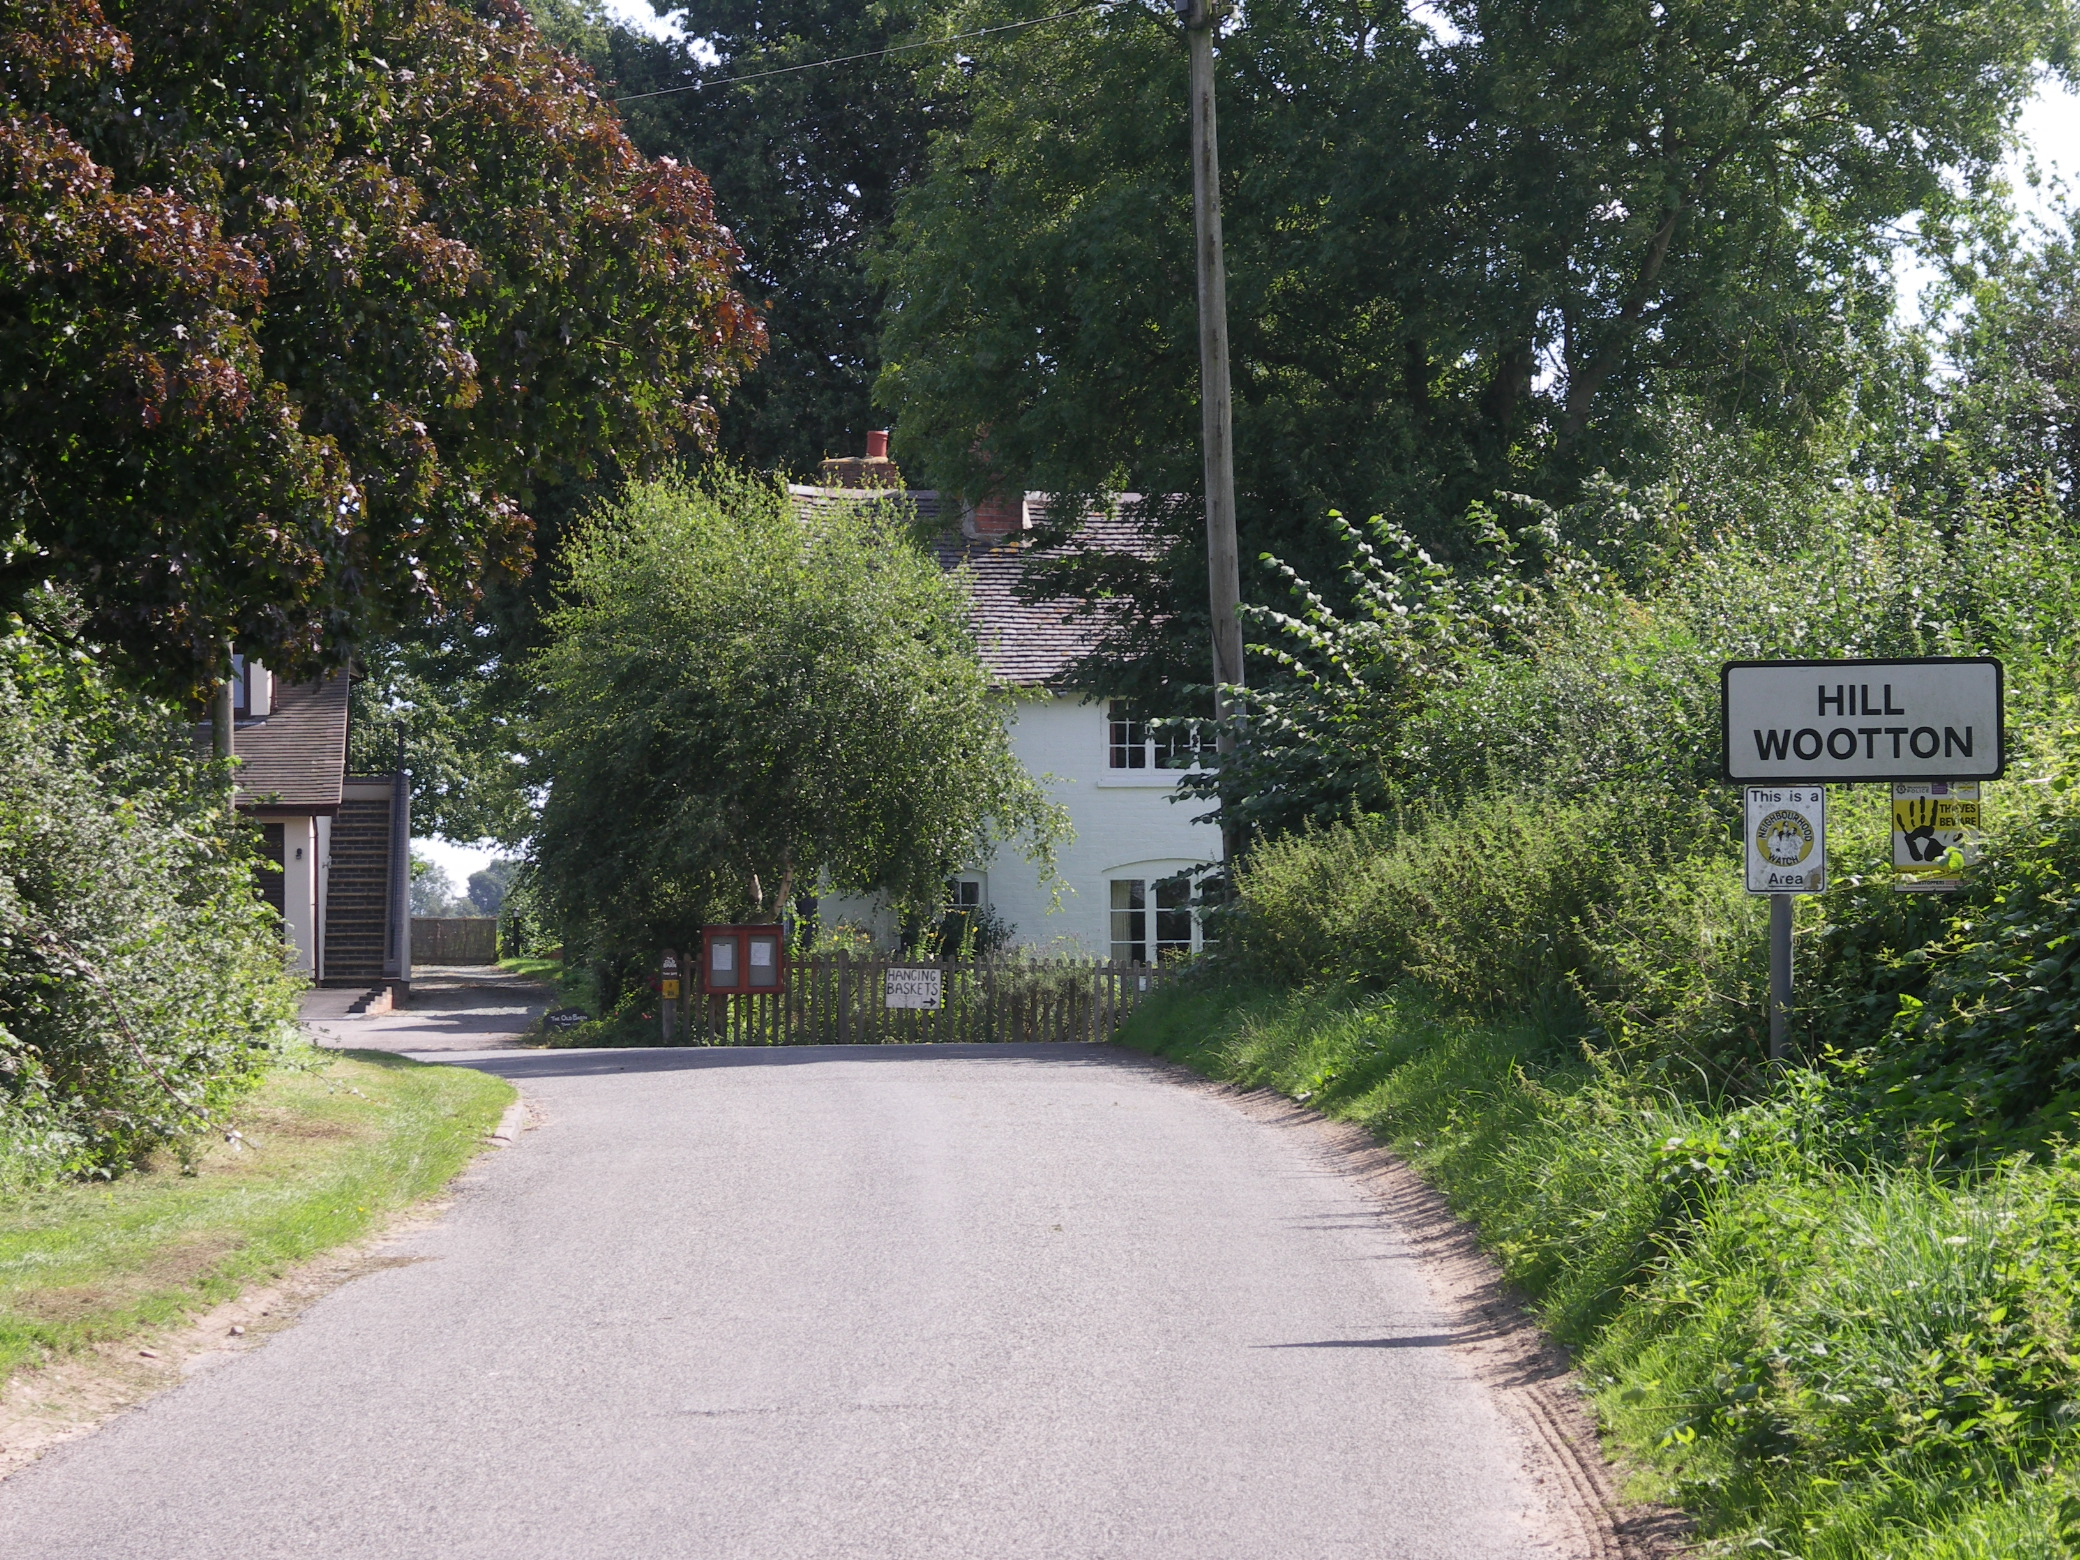 Approach to Hill Wootton